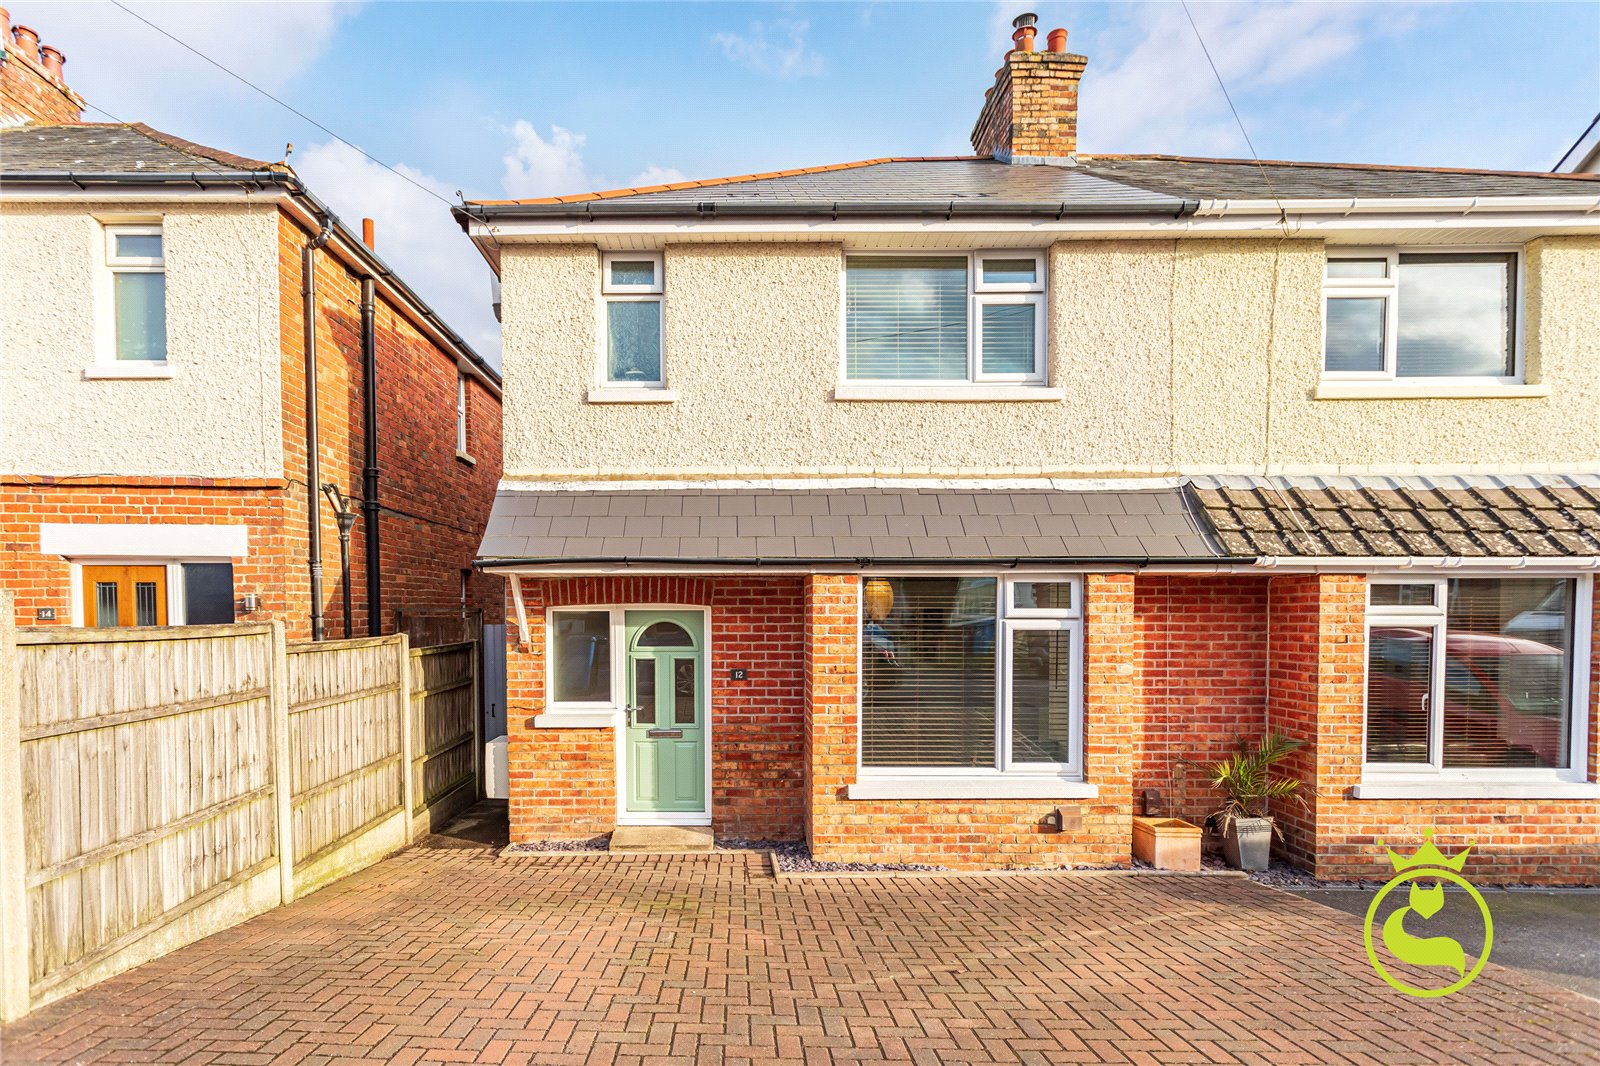 3 bed house for sale in Cranbrook Road, Parkstone, BH12